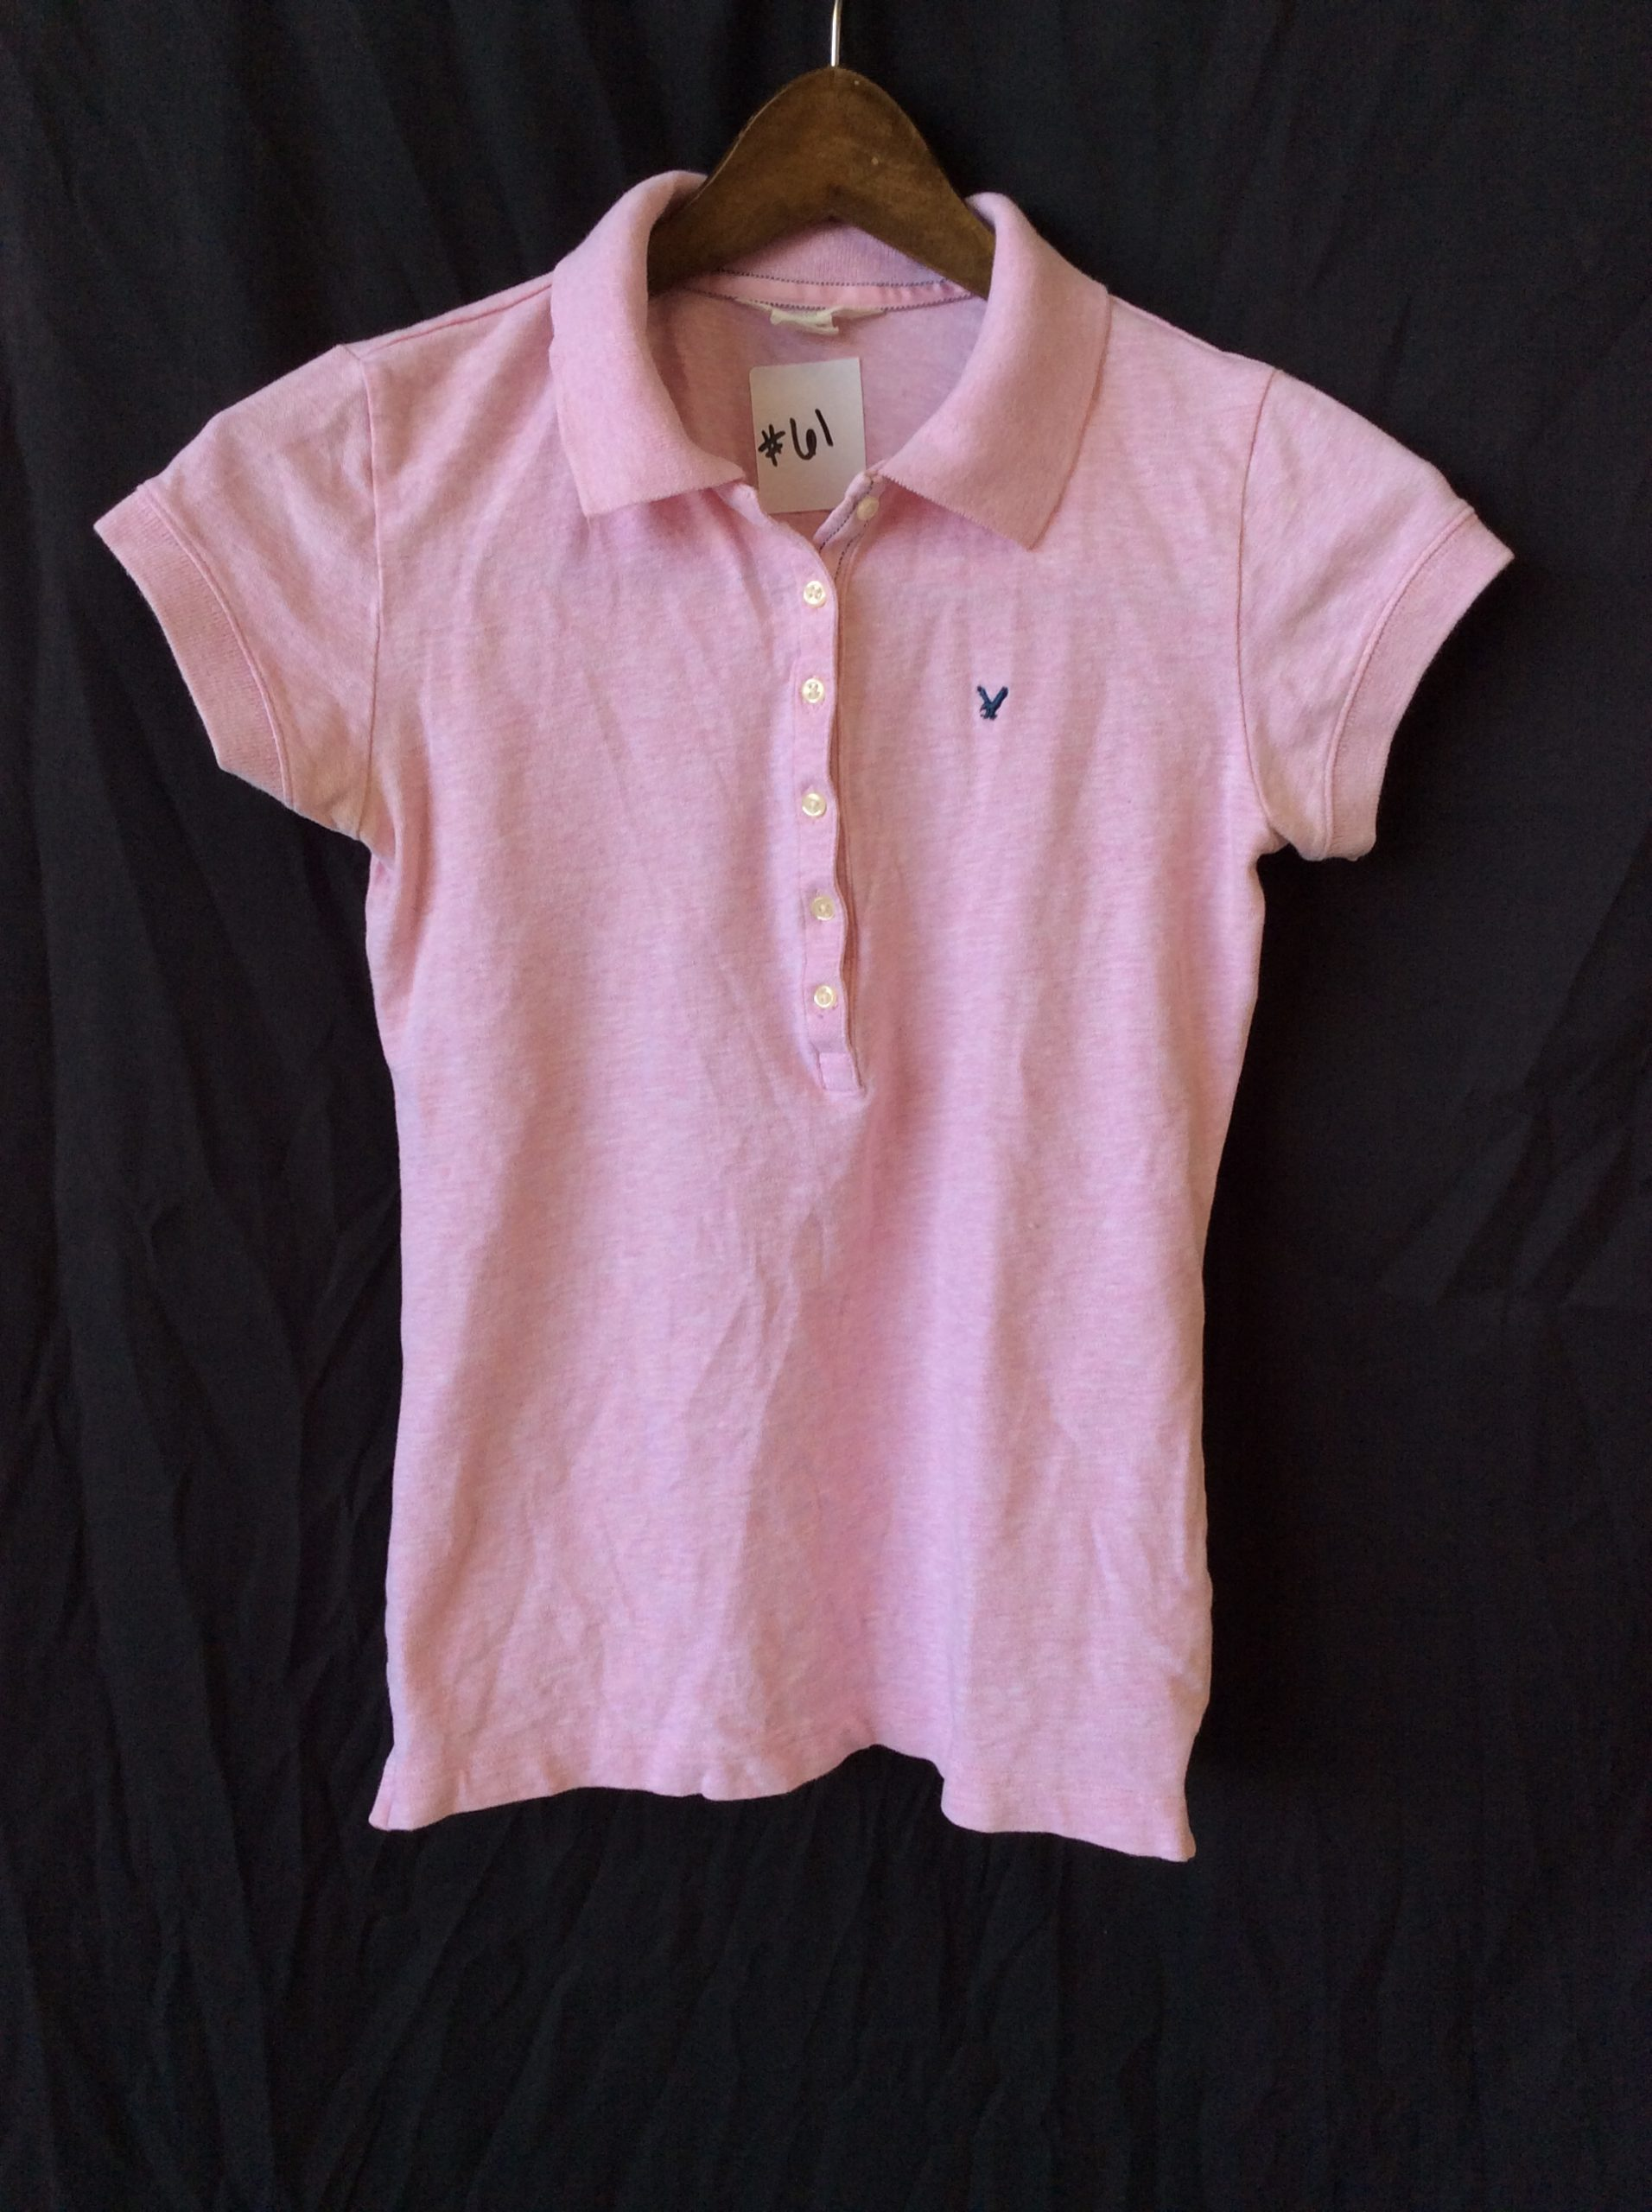 Women's pink polo, size small